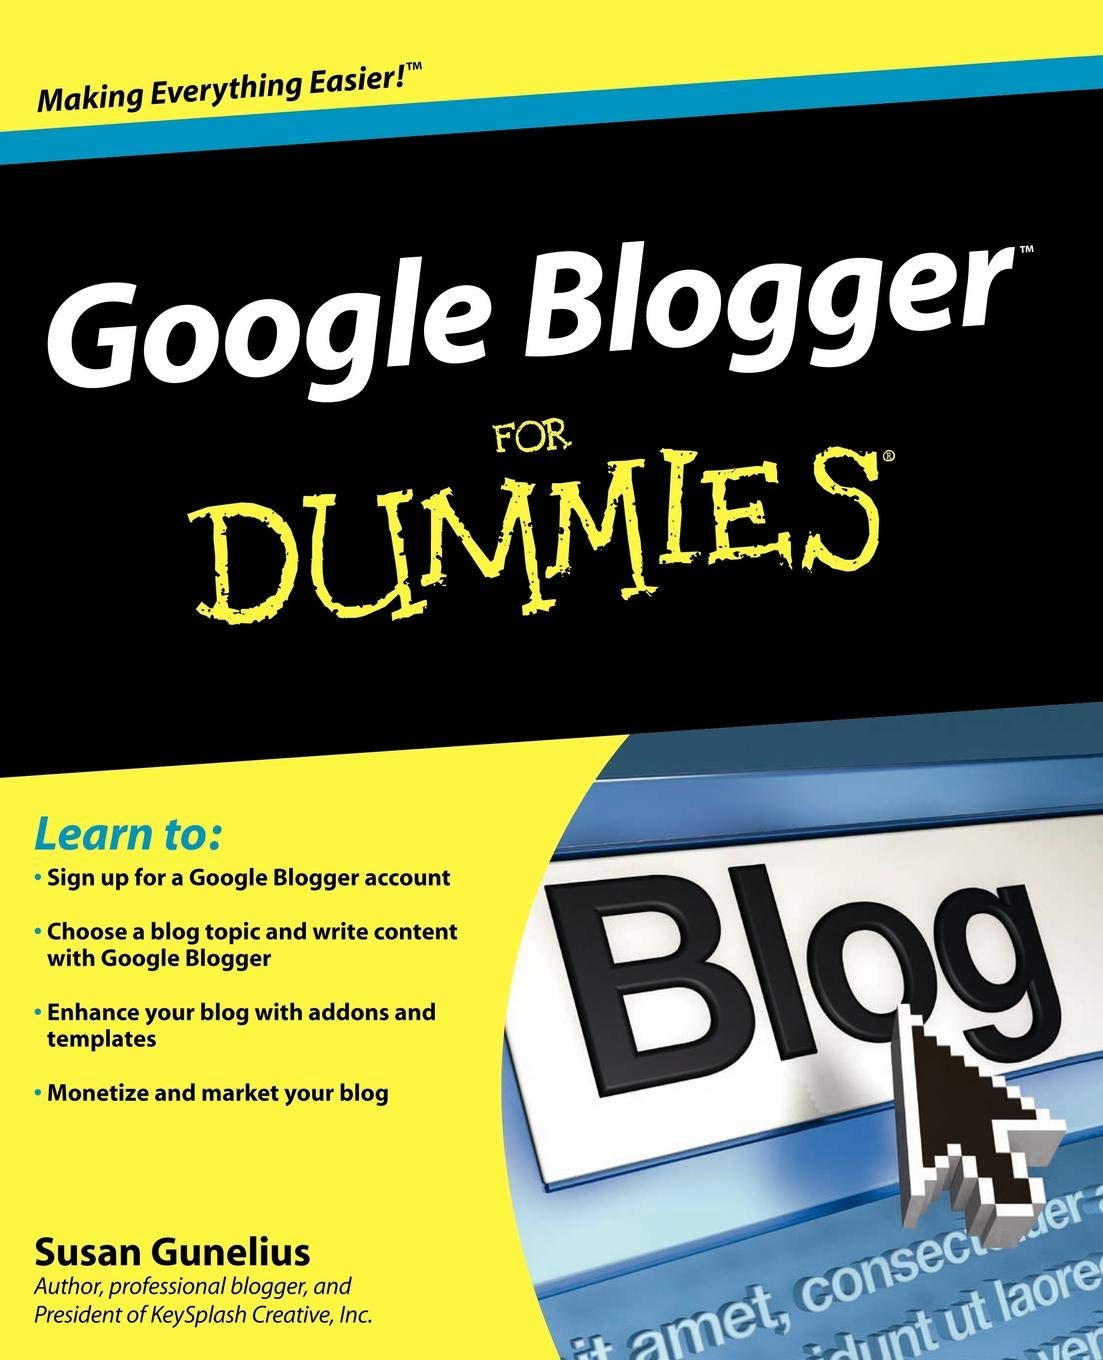 Google Blogger For Dummies: Amazon.es: Susan Gunelius: Libros en idiomas extranjeros